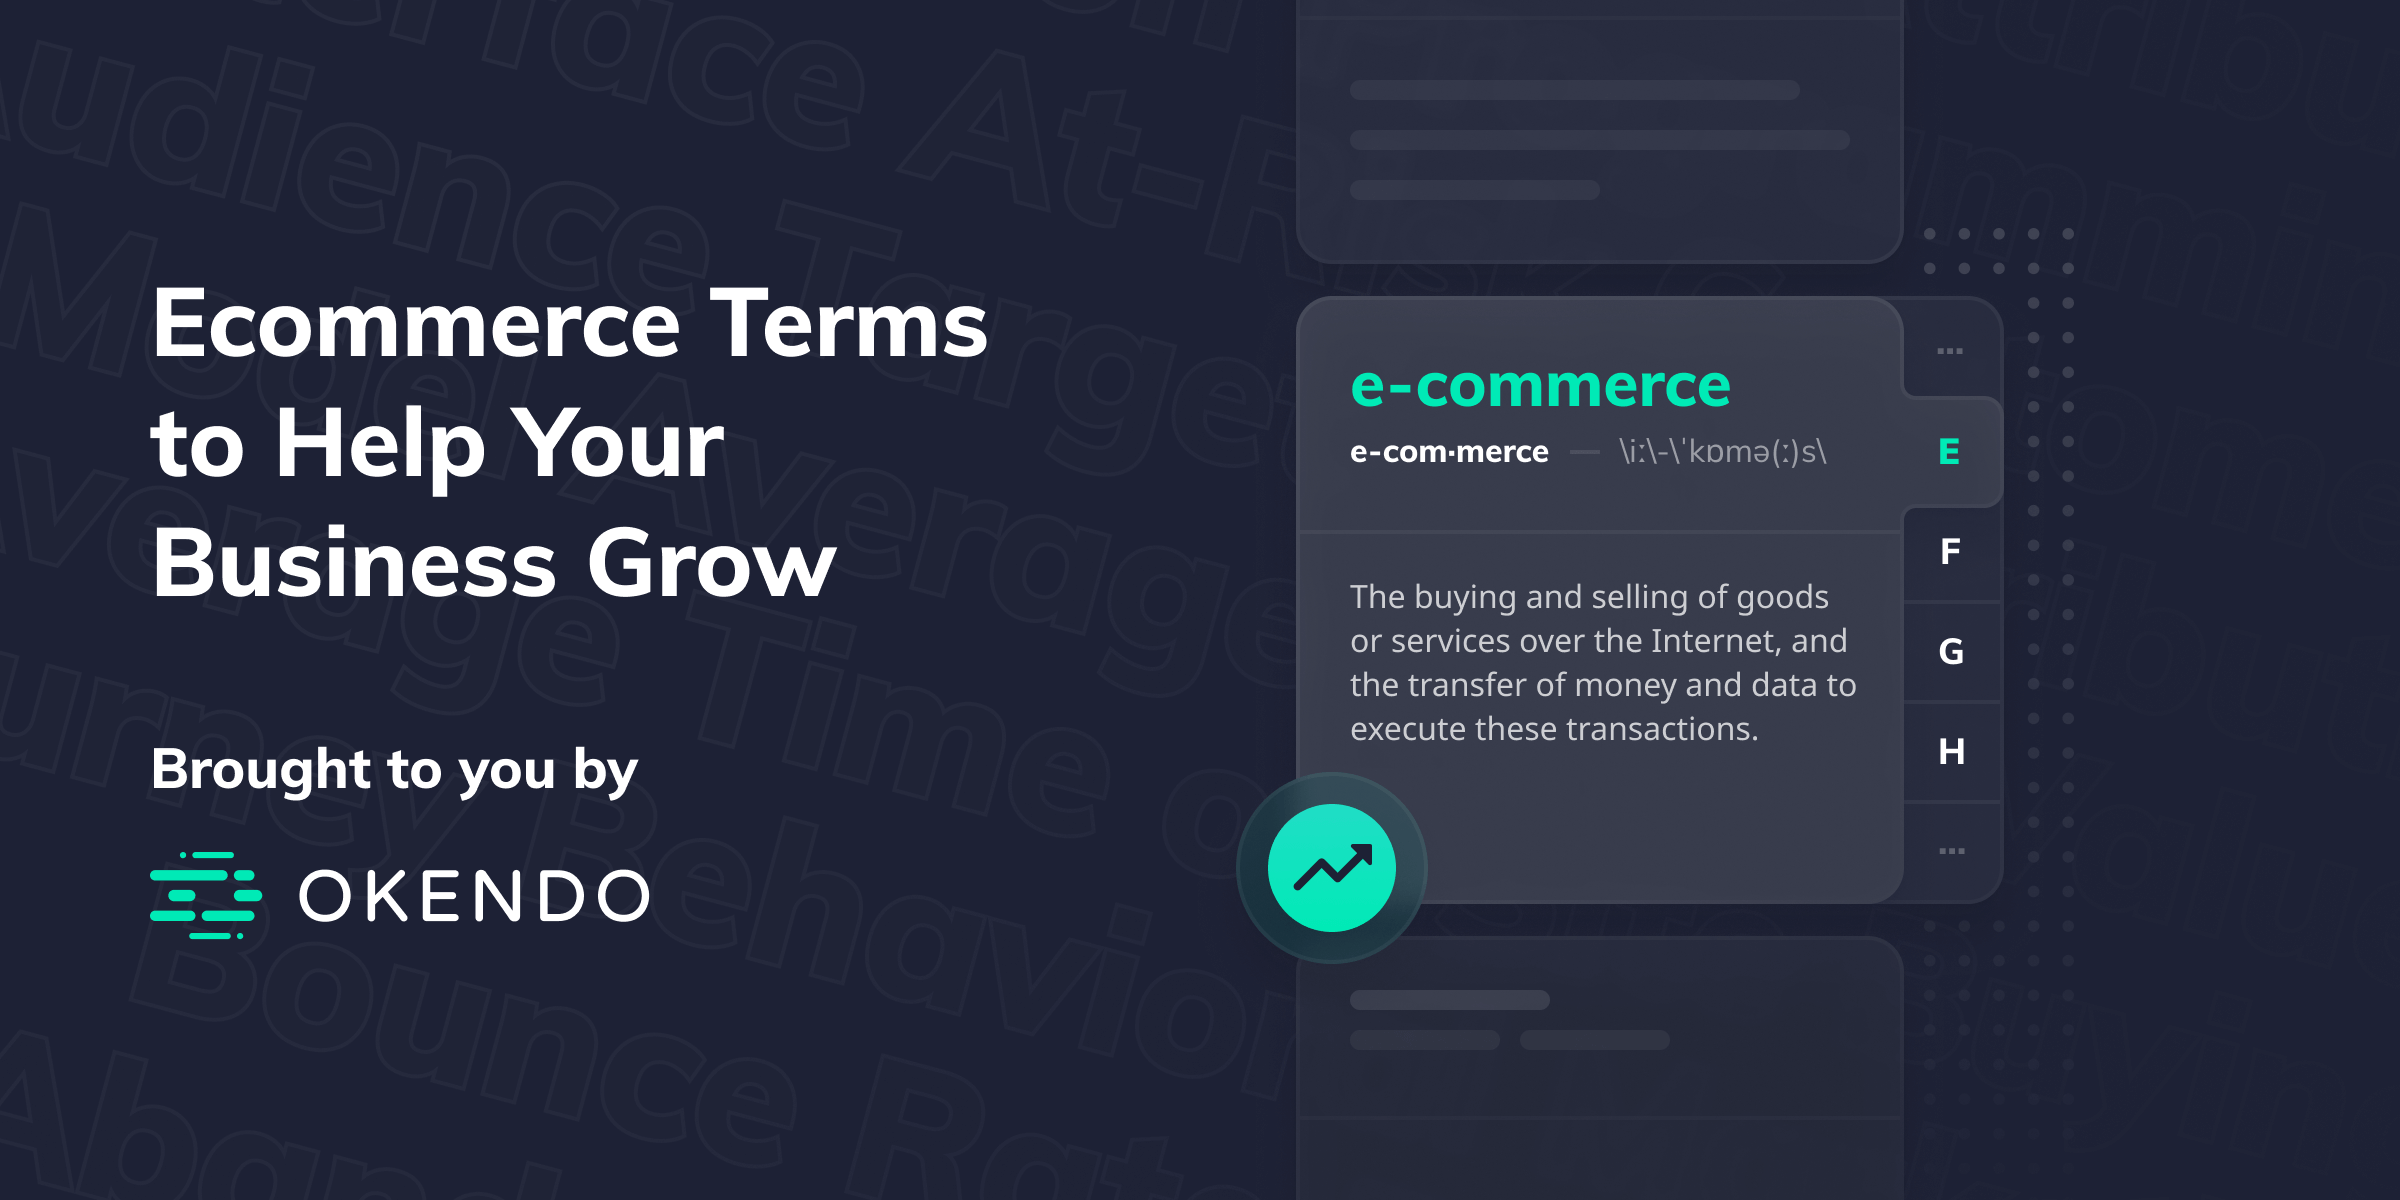 Ecommerce Terms to Help Your Business Grow